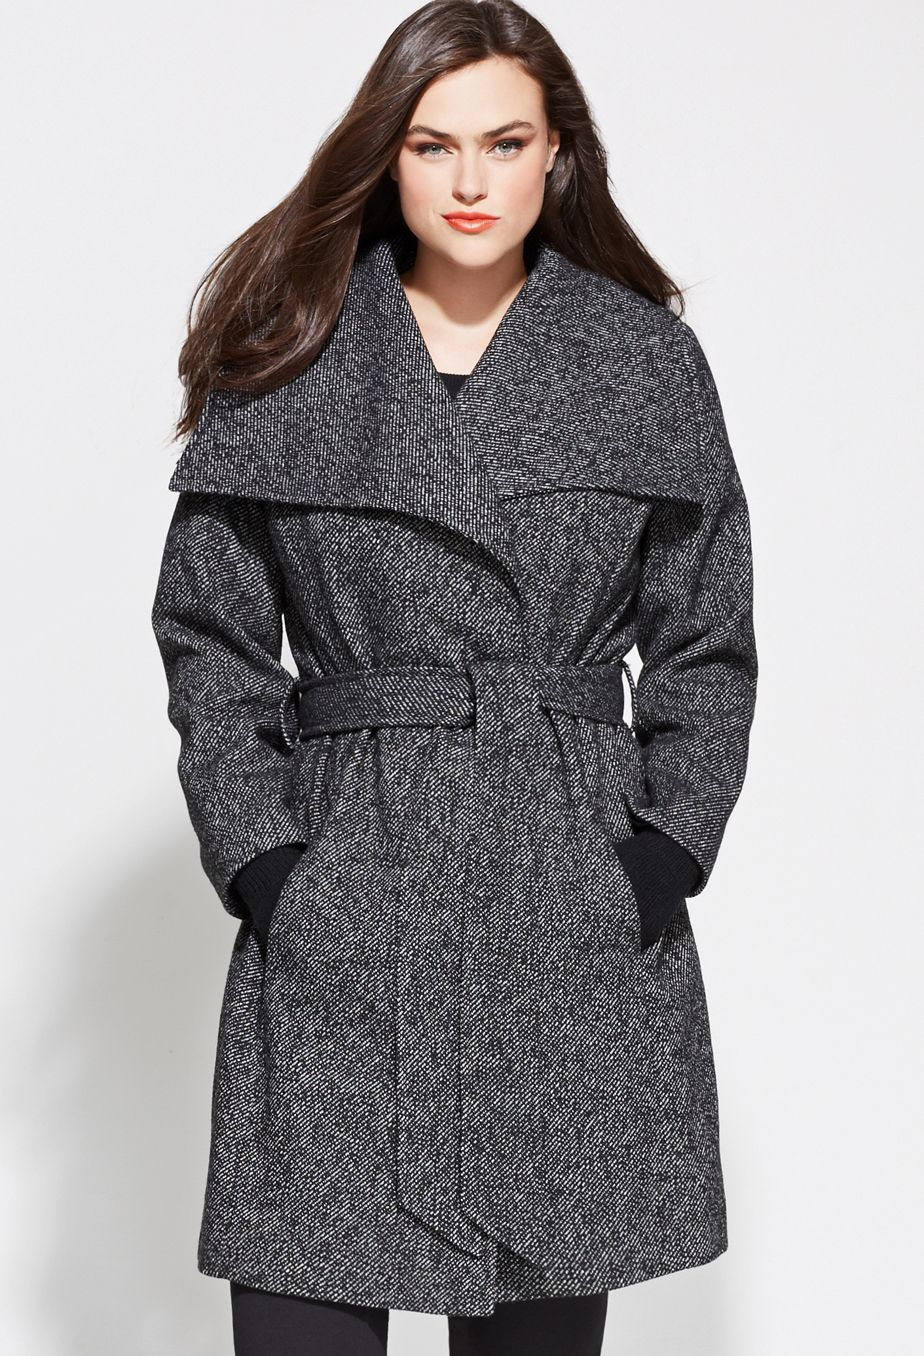 867a67a0c49 Belted Tweed Coat